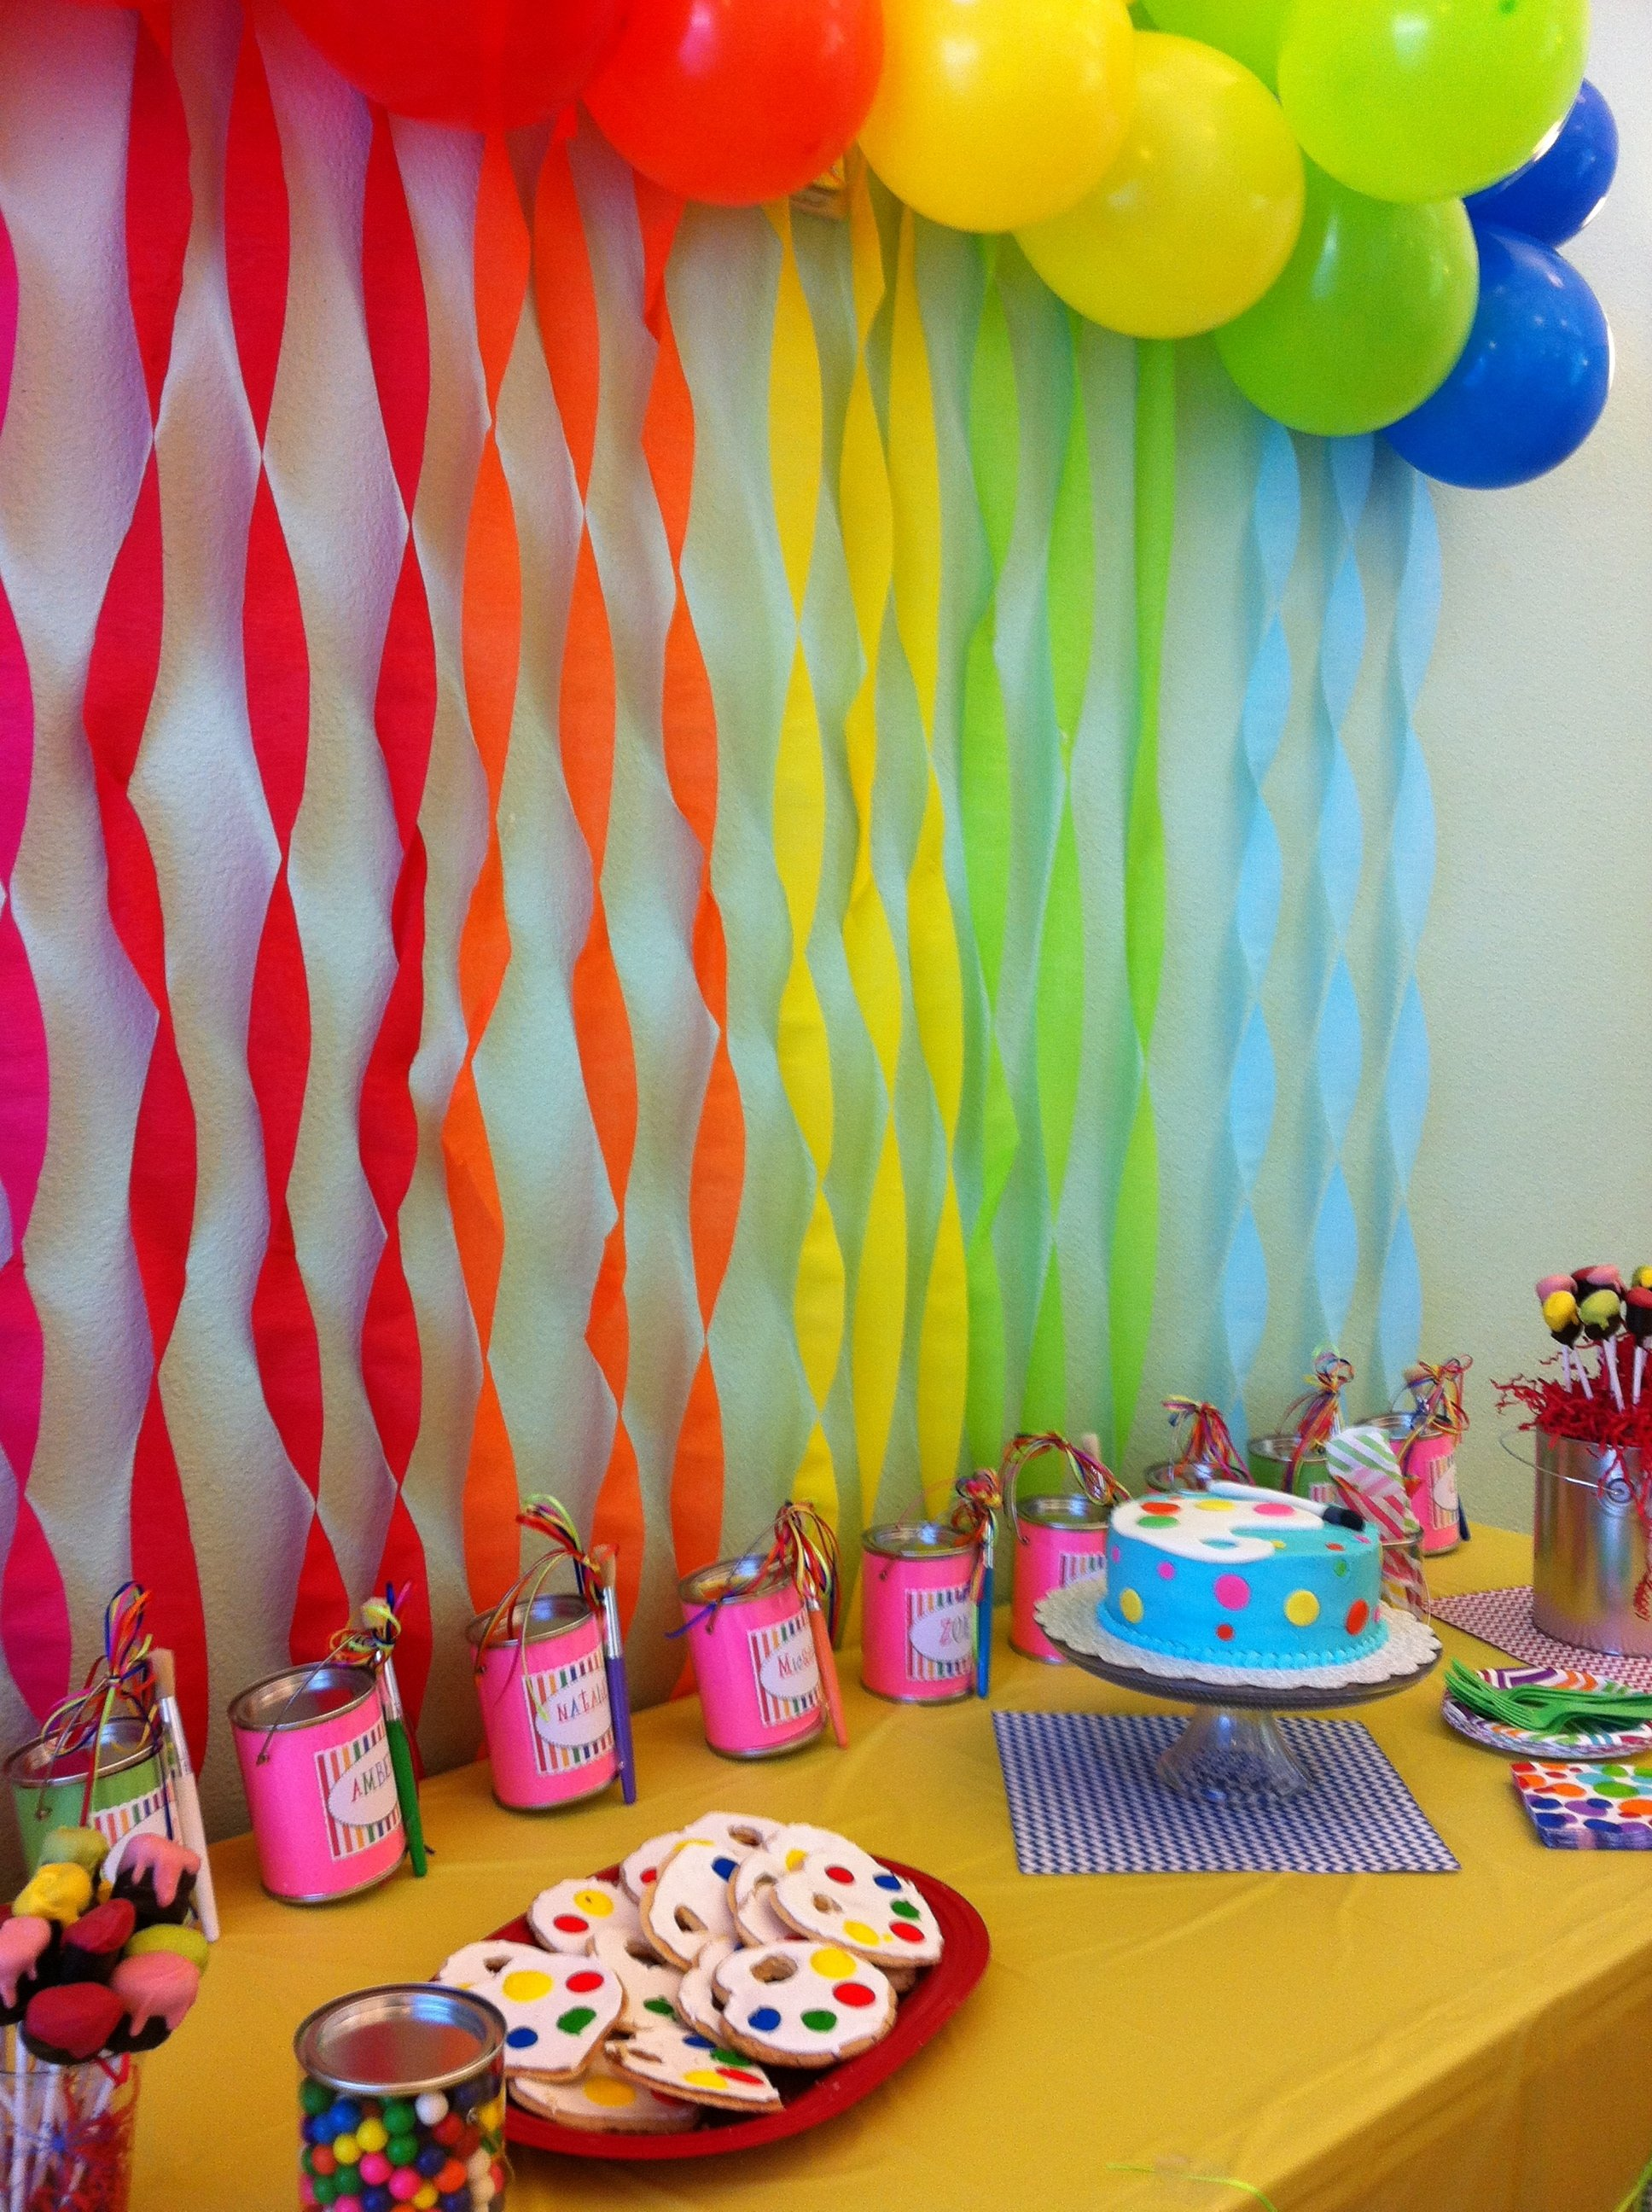 10 Wonderful 3 Year Old Party Ideas Dazzling Birthday At Home